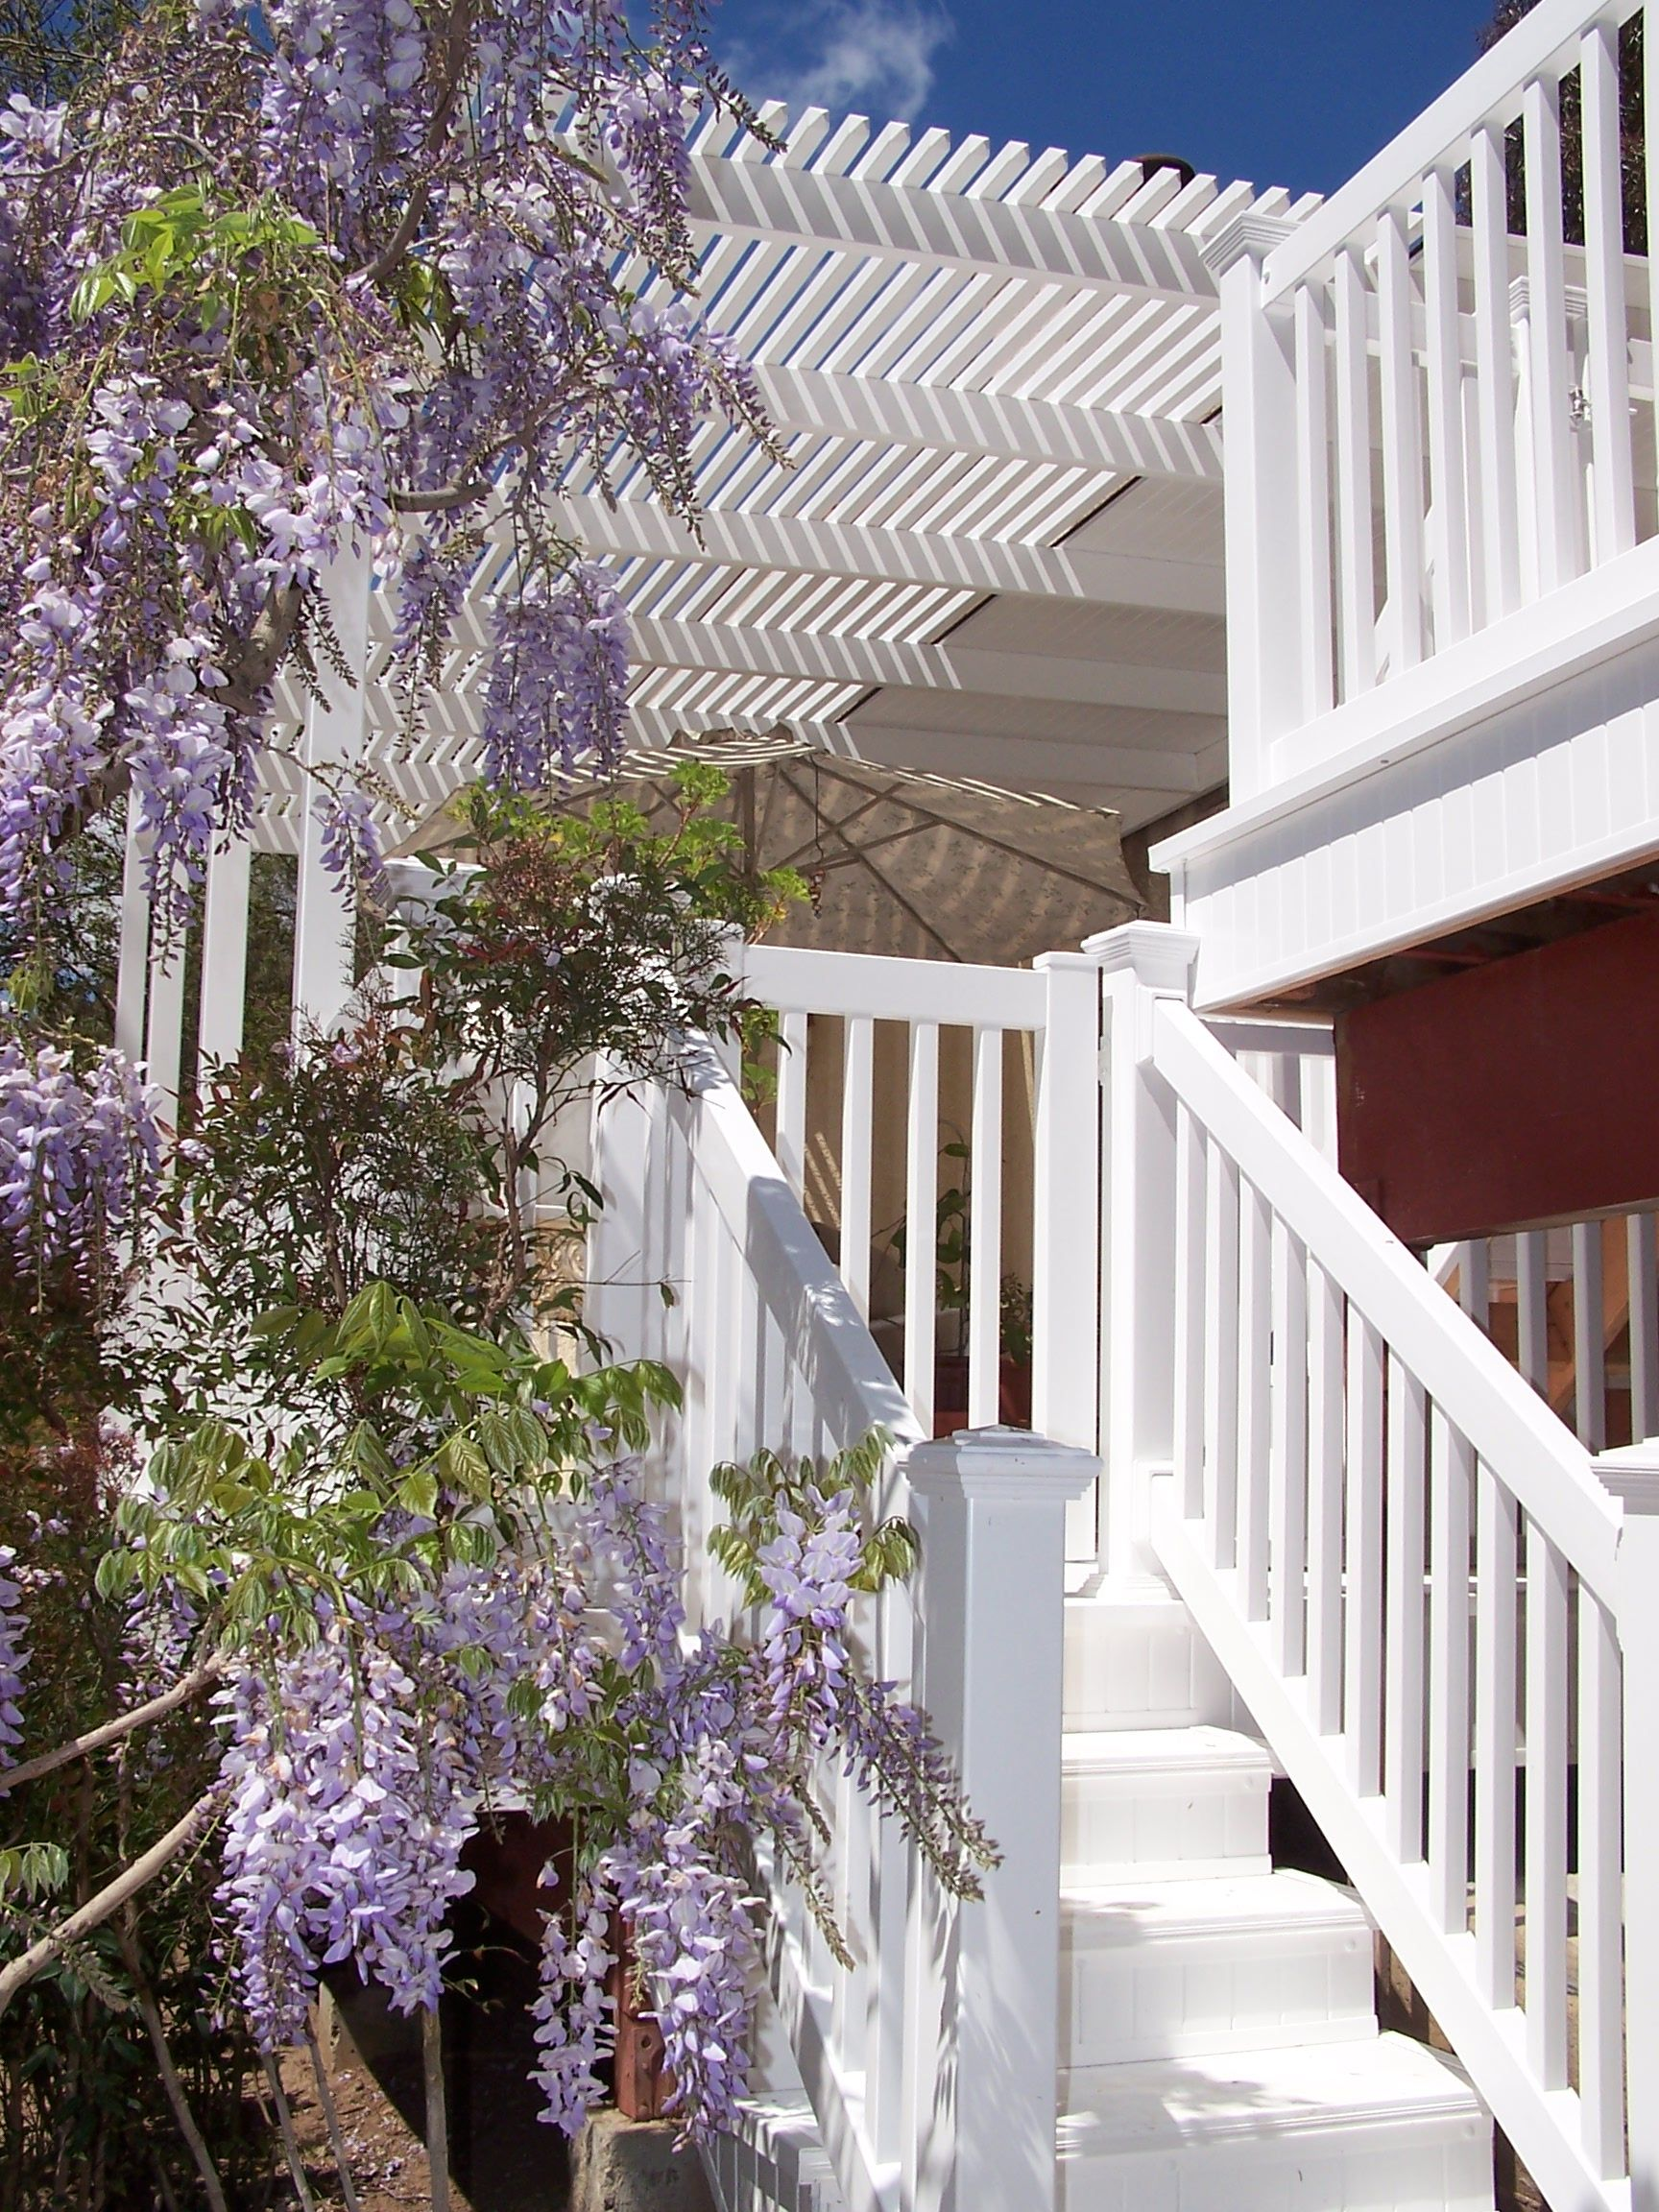 Vinyl Deck and Porch Railing Buyers Guide | Fence Center ...